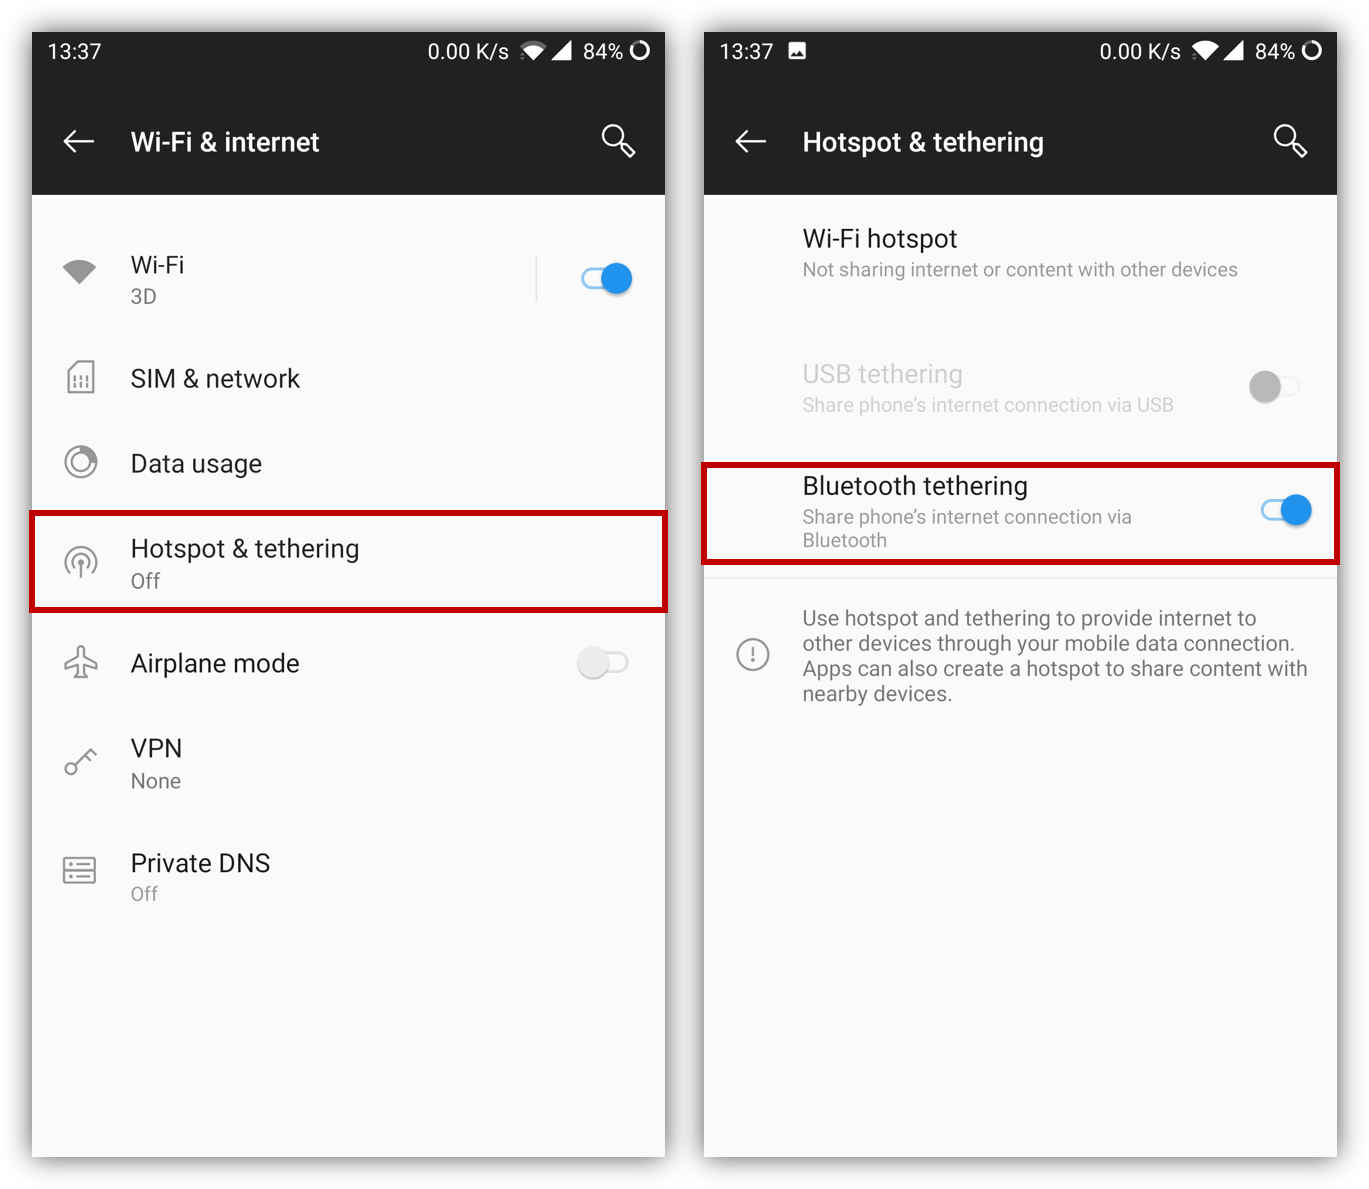 Lander Verhack | The Raging Guide to Auto-enable Bluetooth